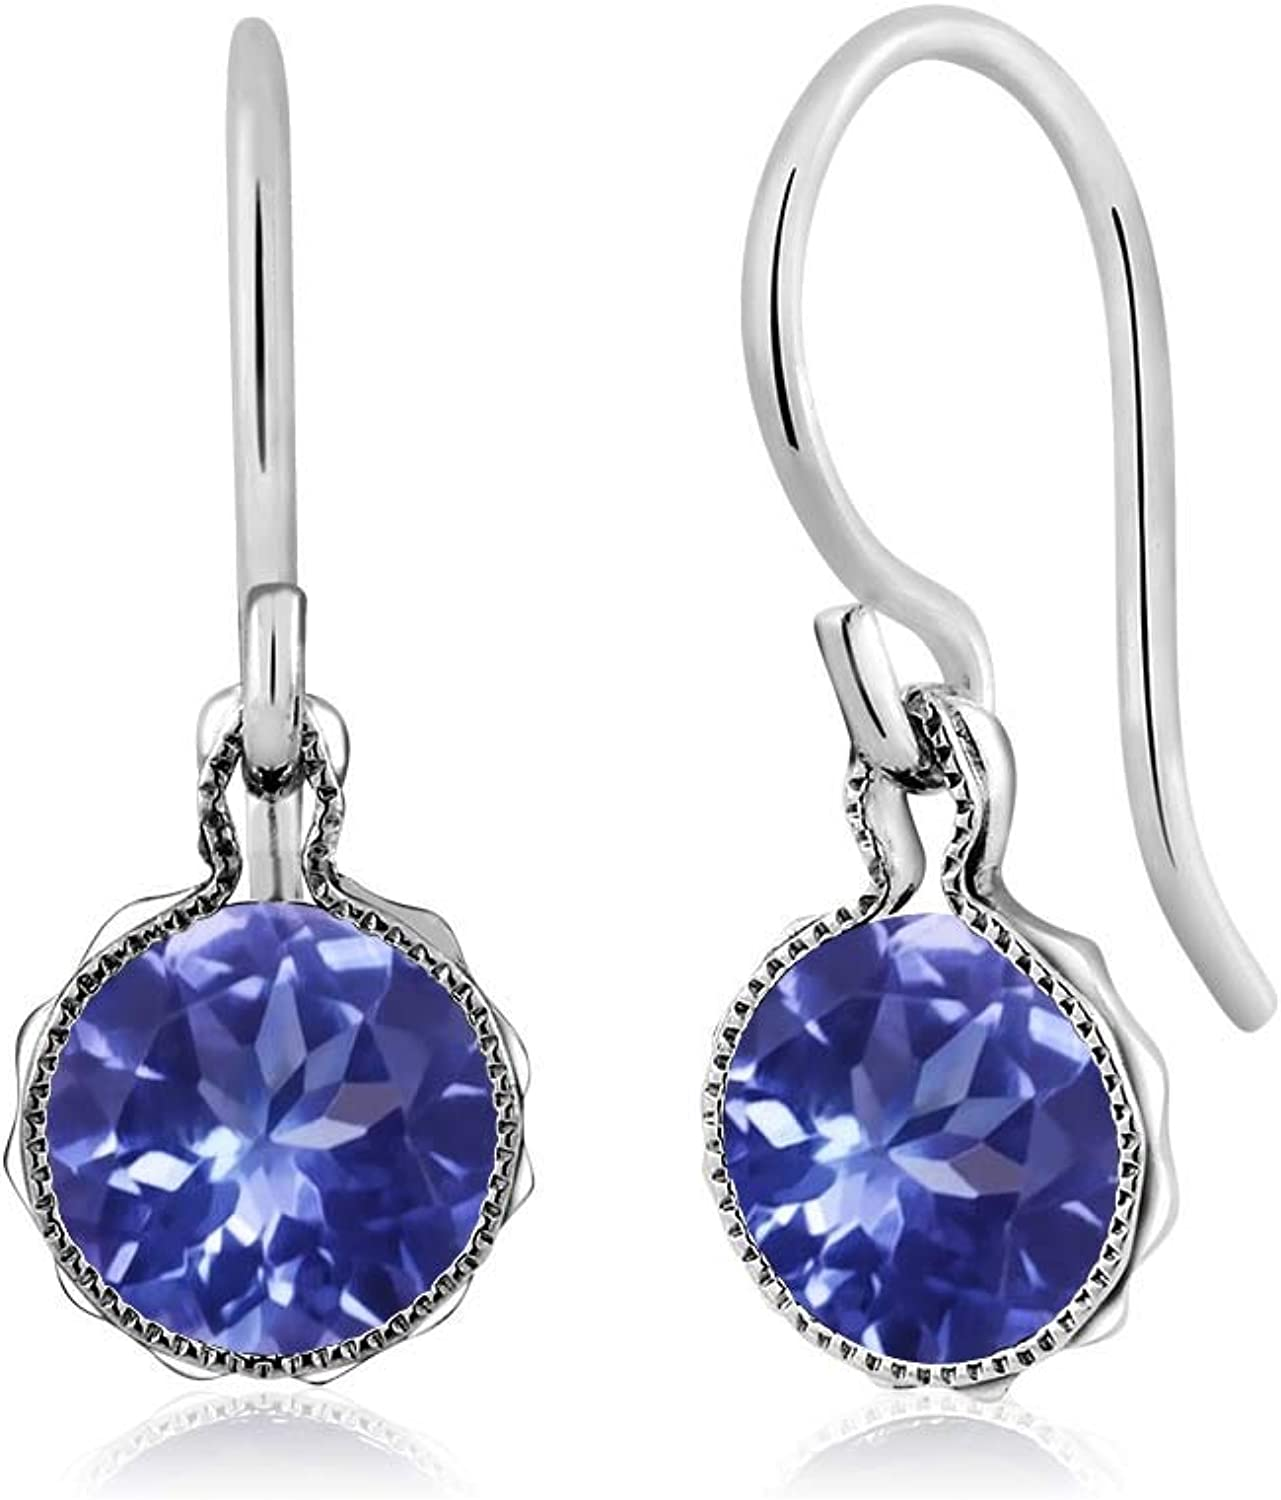 1.60 Ct Round bluee Tanzanite AAA 925 Sterling Silver Dangle Earrings 6mm